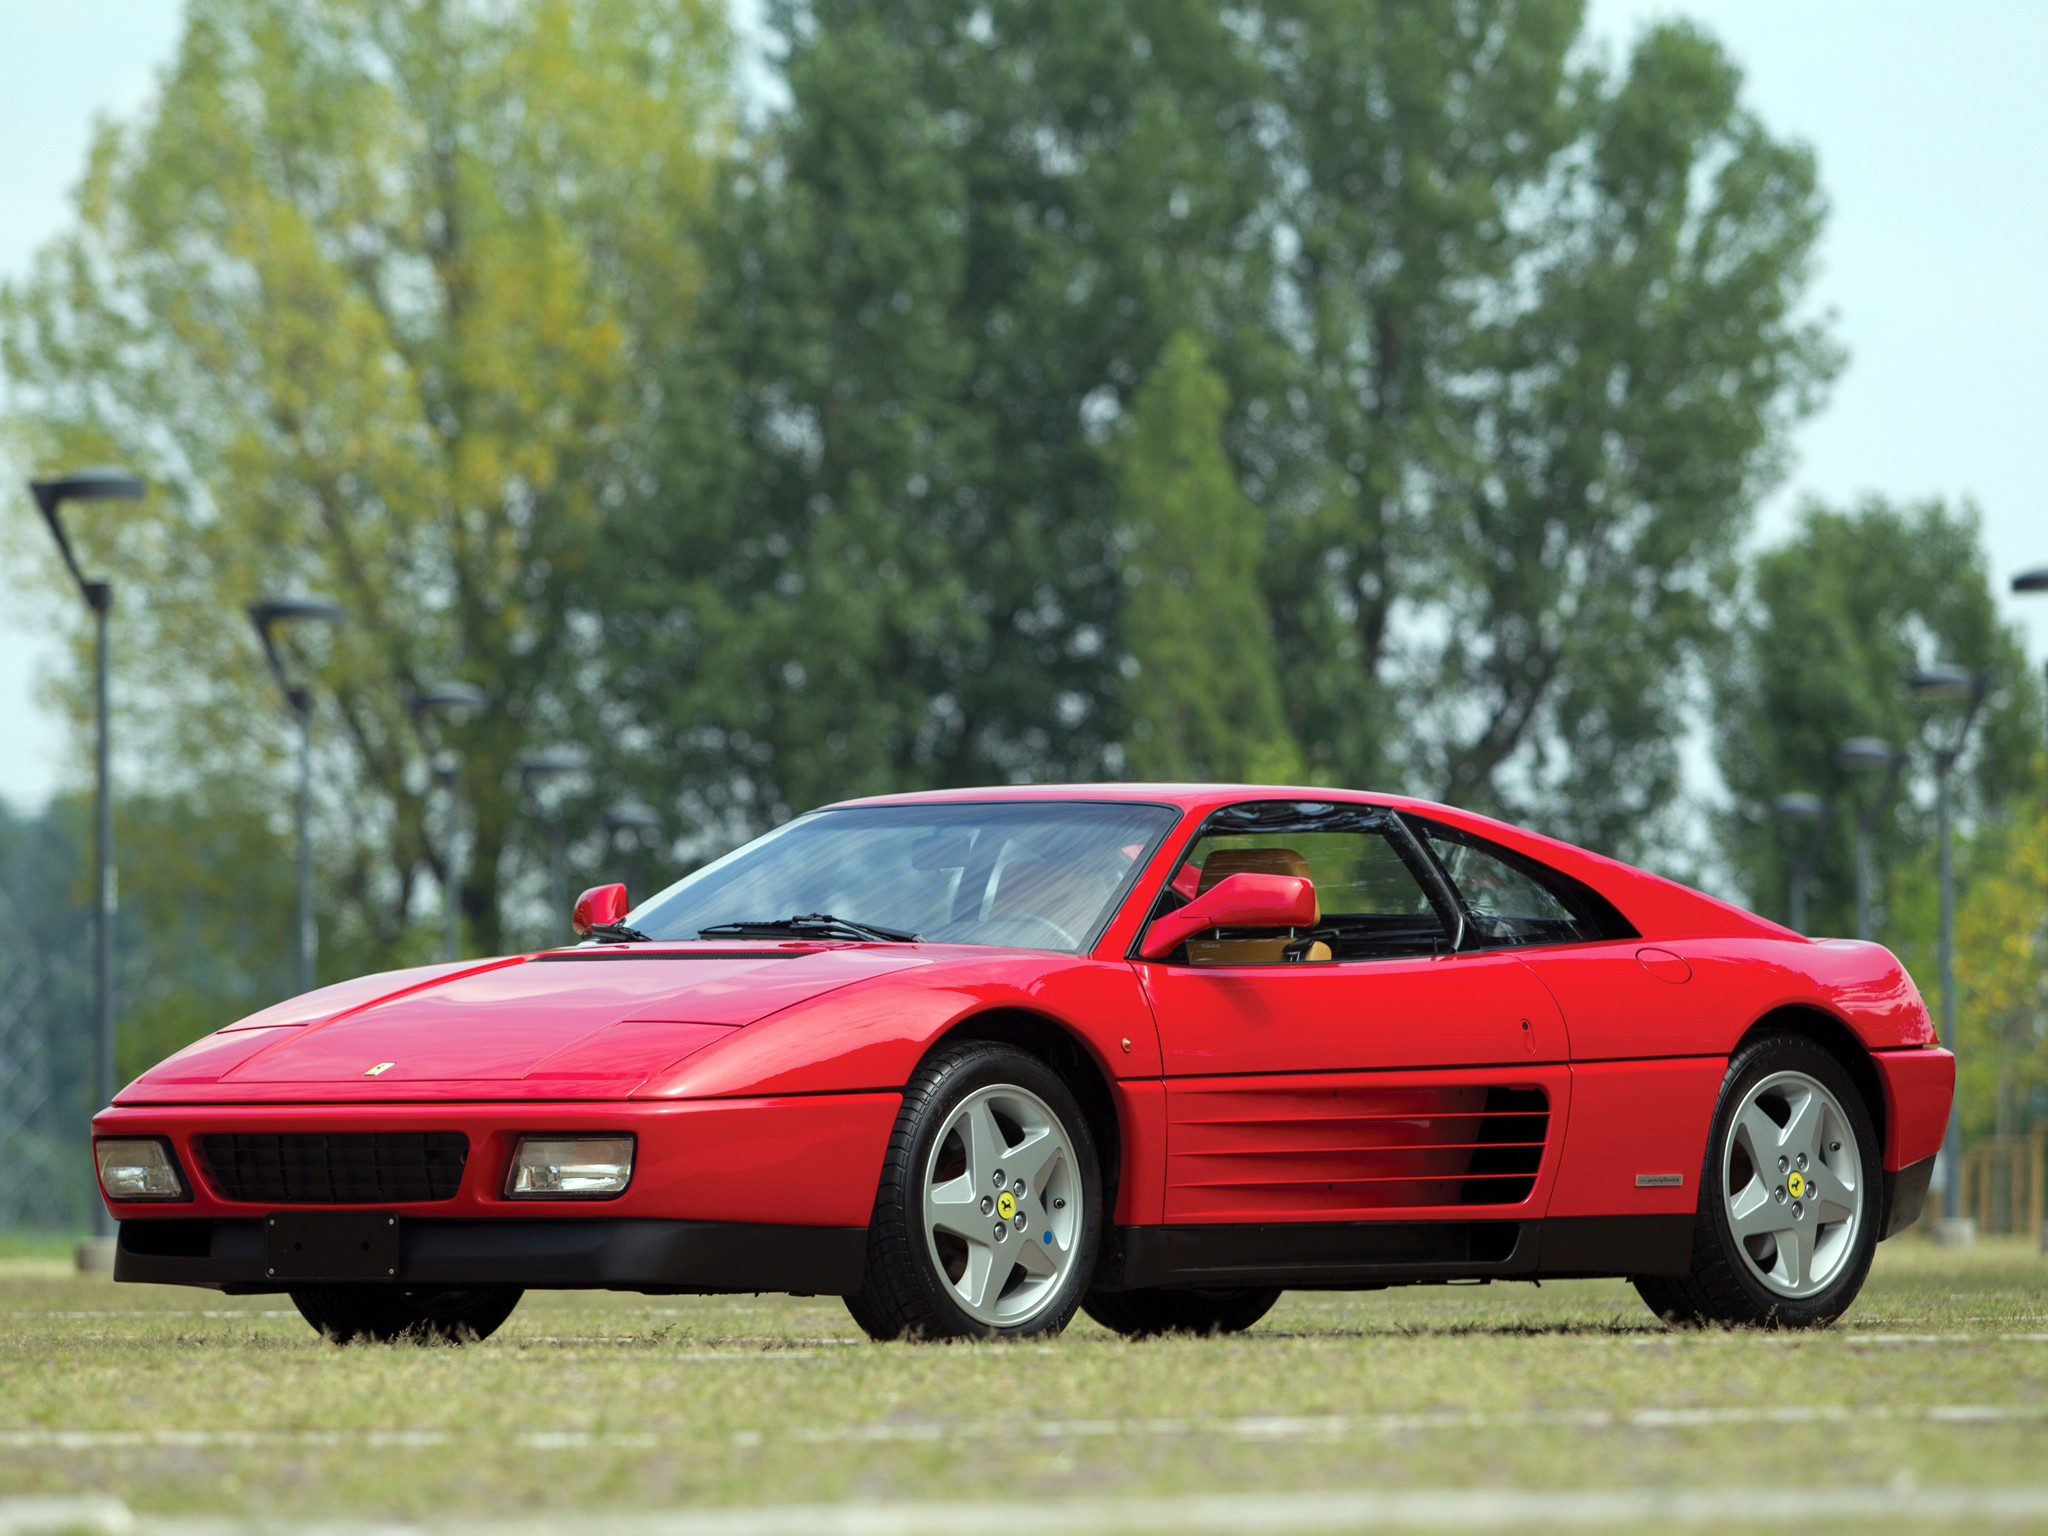 ferrari 348 tb specs 1989 1990 1991 1992 1993 autoevolution. Black Bedroom Furniture Sets. Home Design Ideas